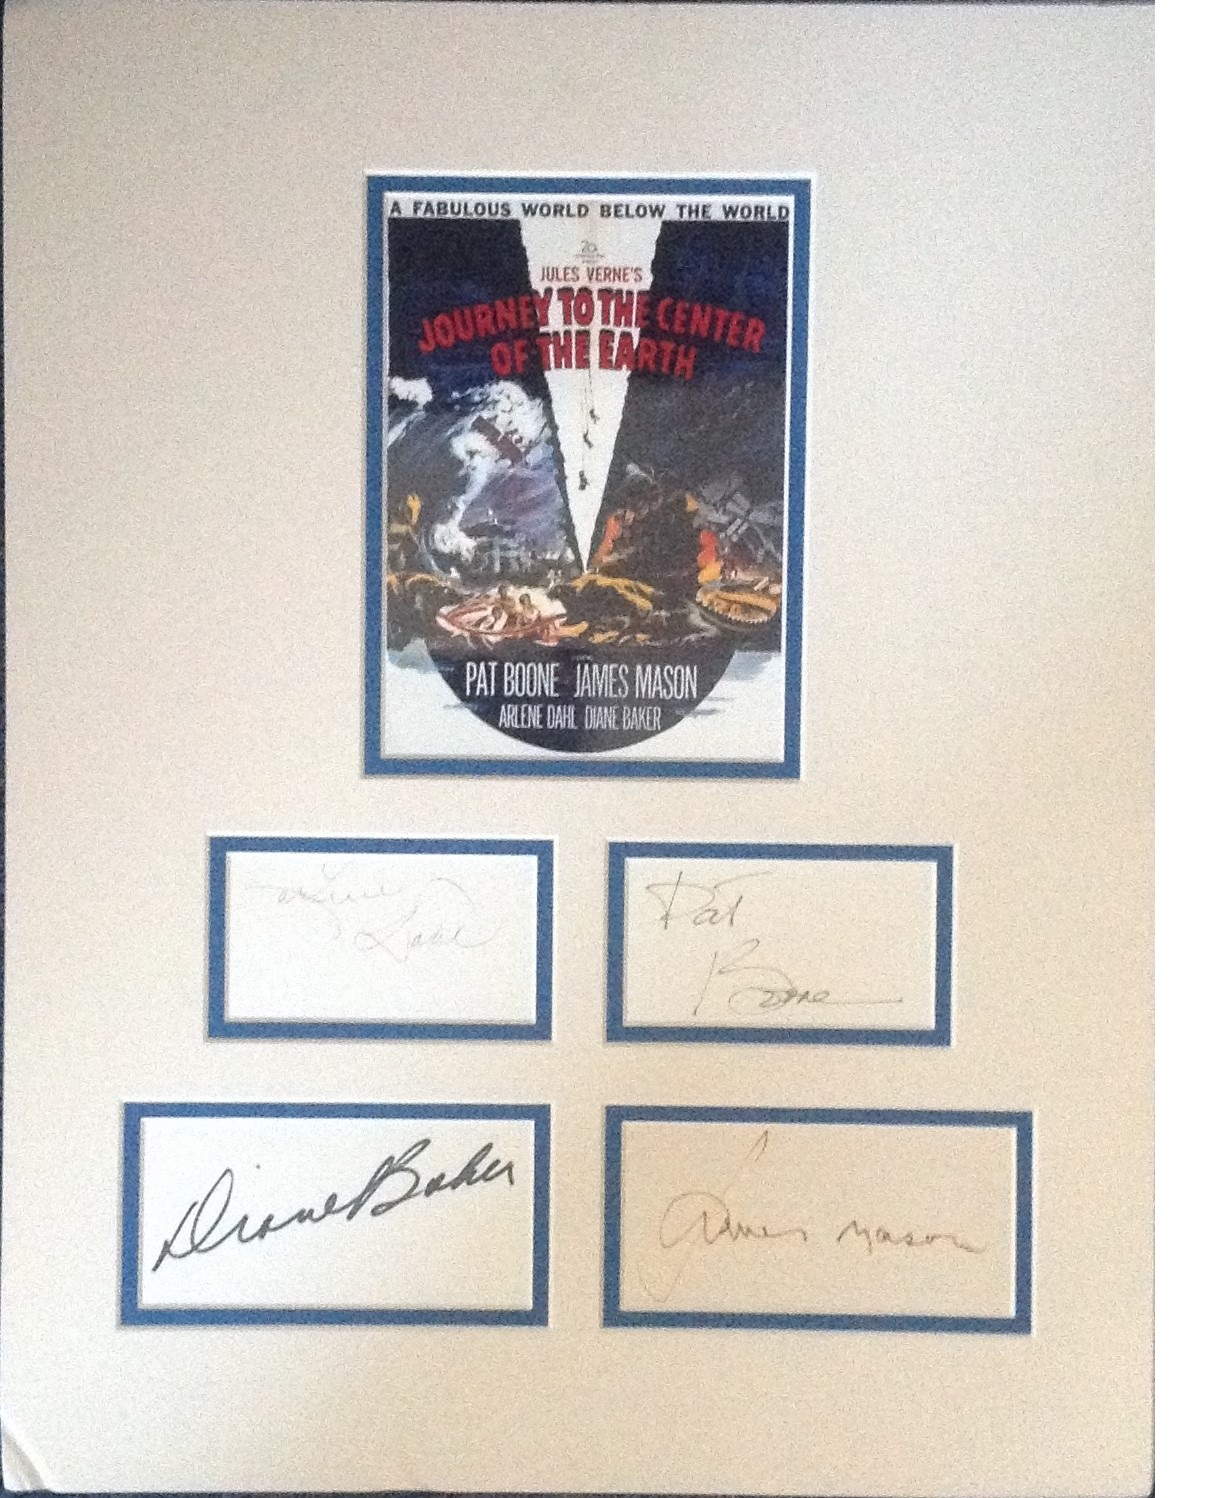 Lot 39 - Journey to the Center of the Earth 18x14 overall signature piece includes signatures from Par Boone,